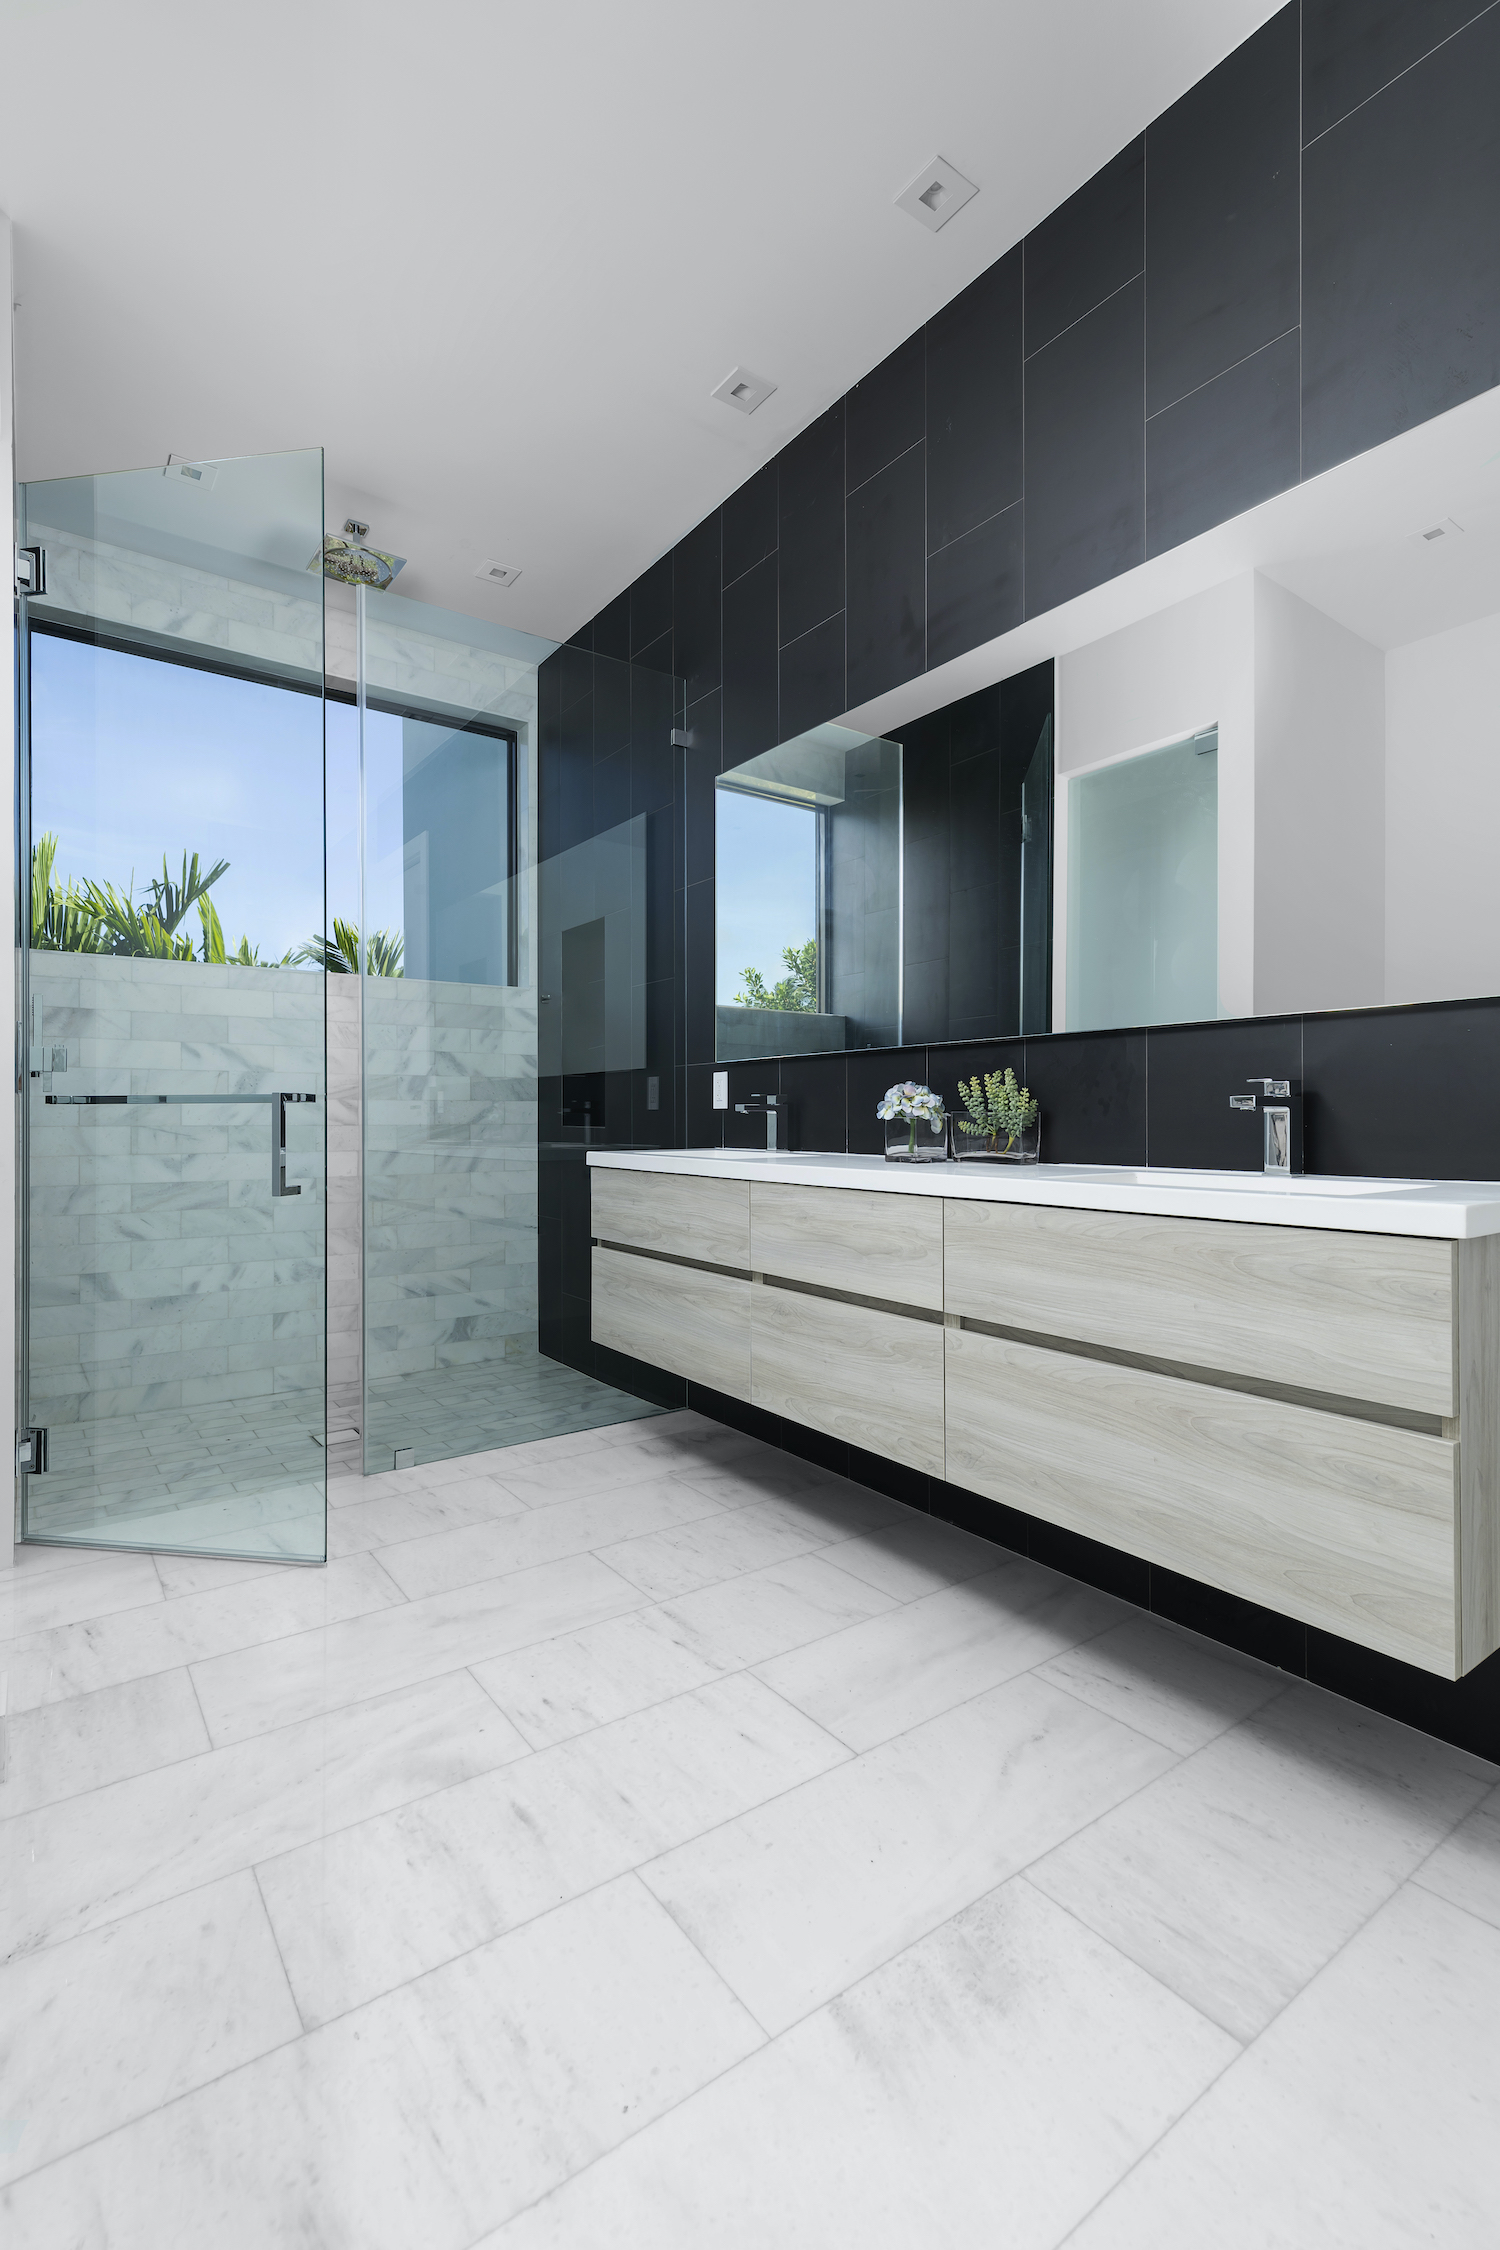 bathroom with glass door separate the washing space form bath